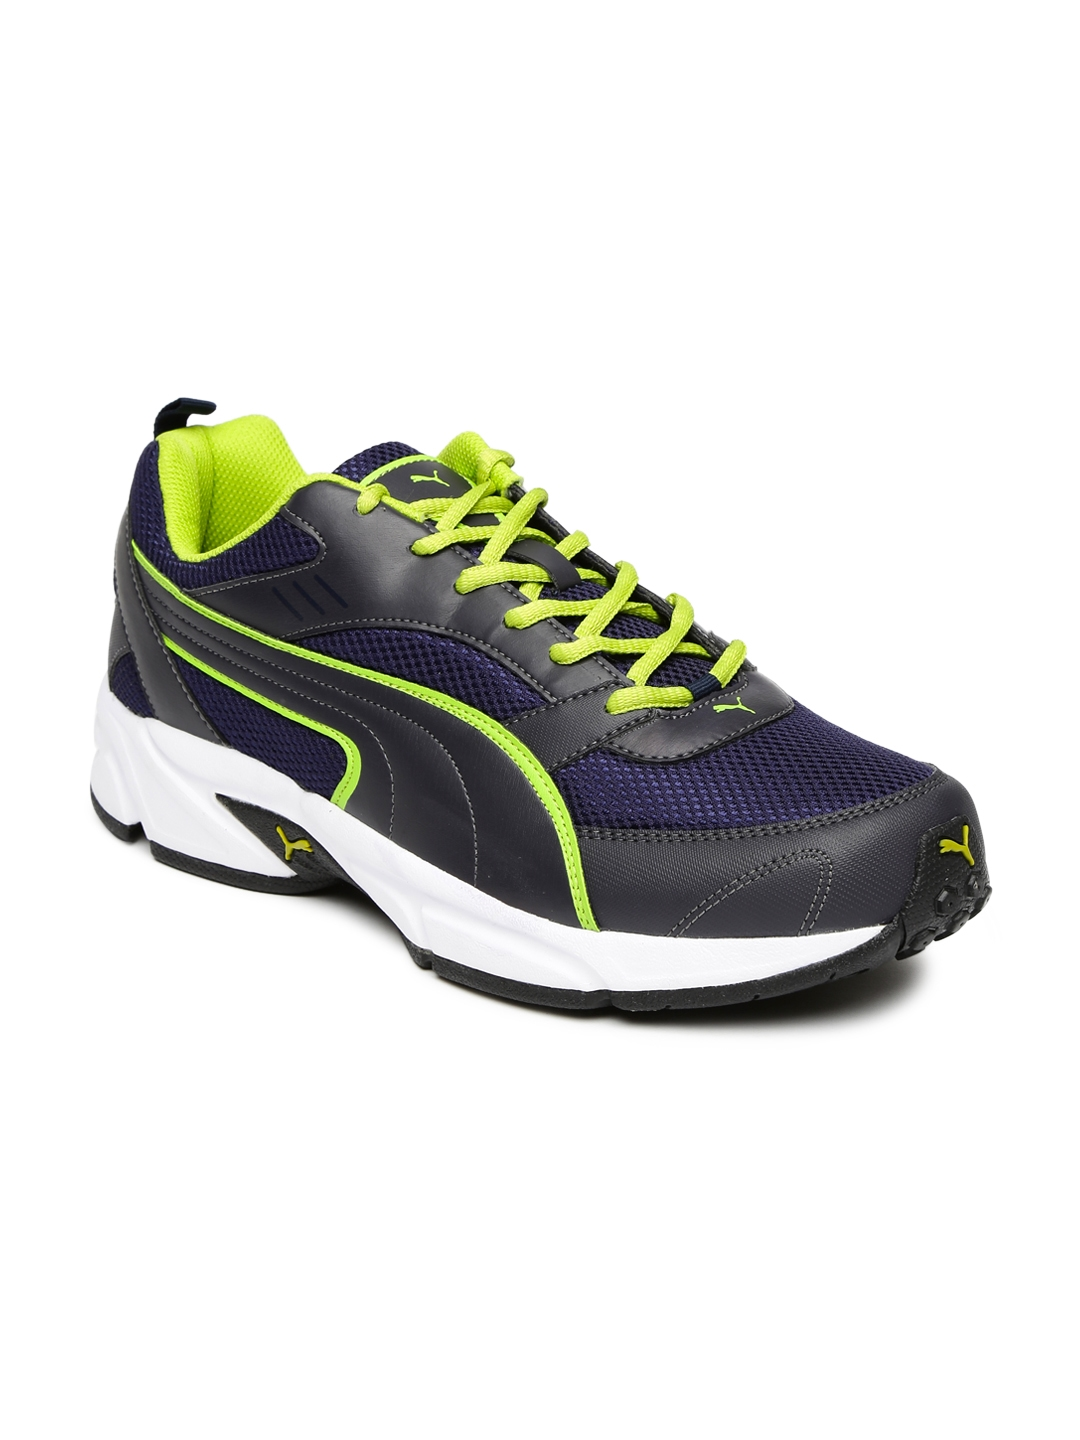 a94839e7fc6 Buy Puma Men Navy   Black Atom III DP Running Shoes - Sports Shoes ...